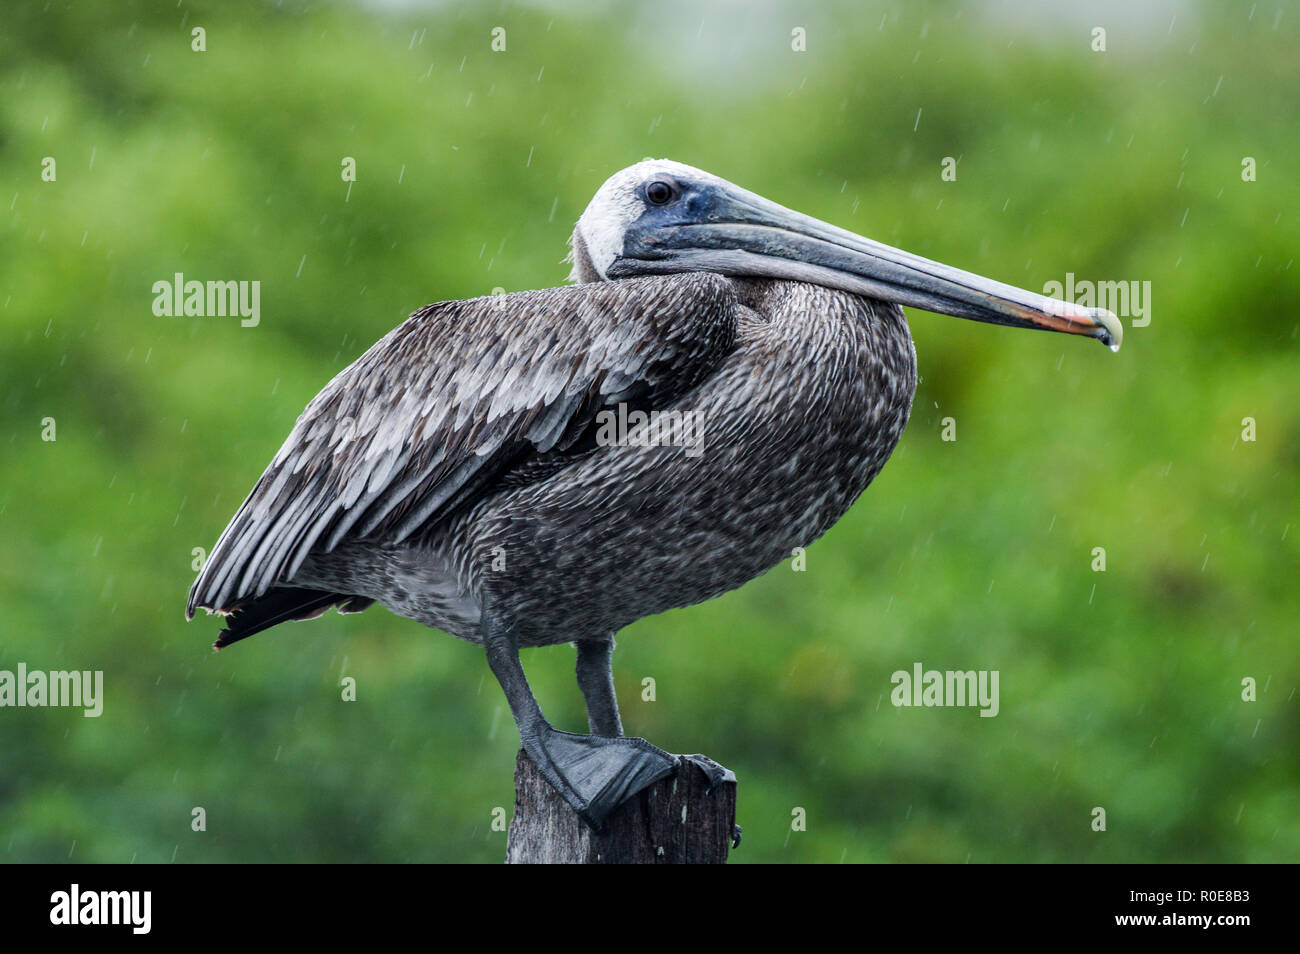 Drenched brown pelican looking unimpressed in heavy rain in Mexico's Sian Ka'an Biosphere Reserve Stock Photo